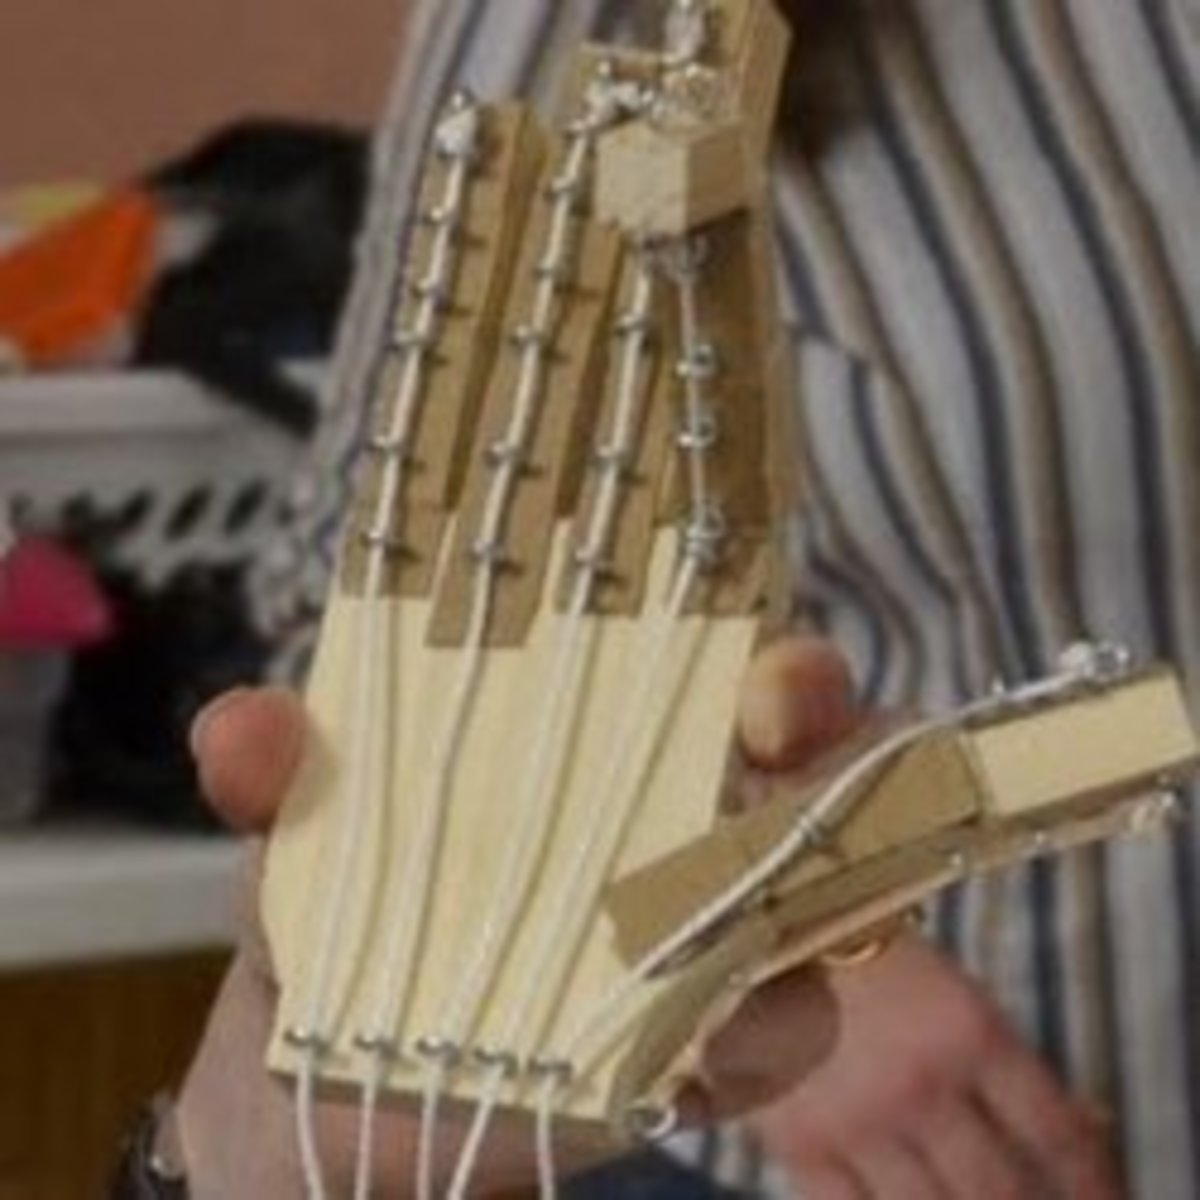 Working wooden model of the bones of the hand and tendons